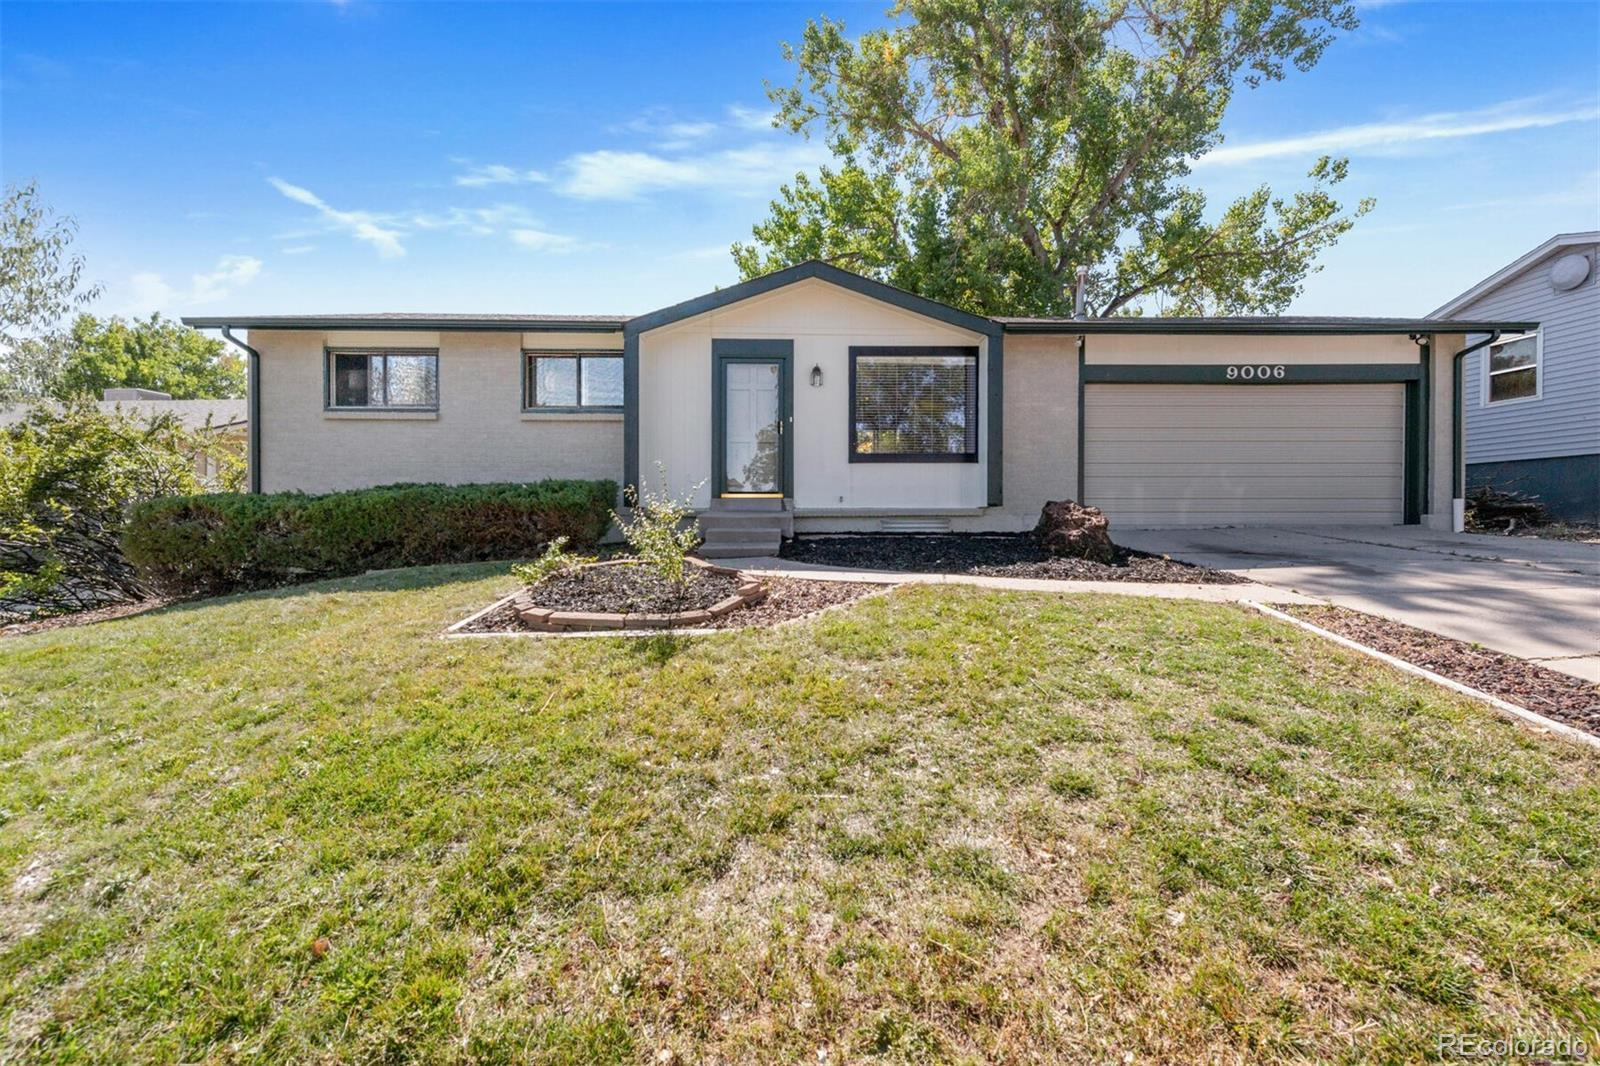 9006 Cody Circle, Westminster, CO 80021 - #: 2919574